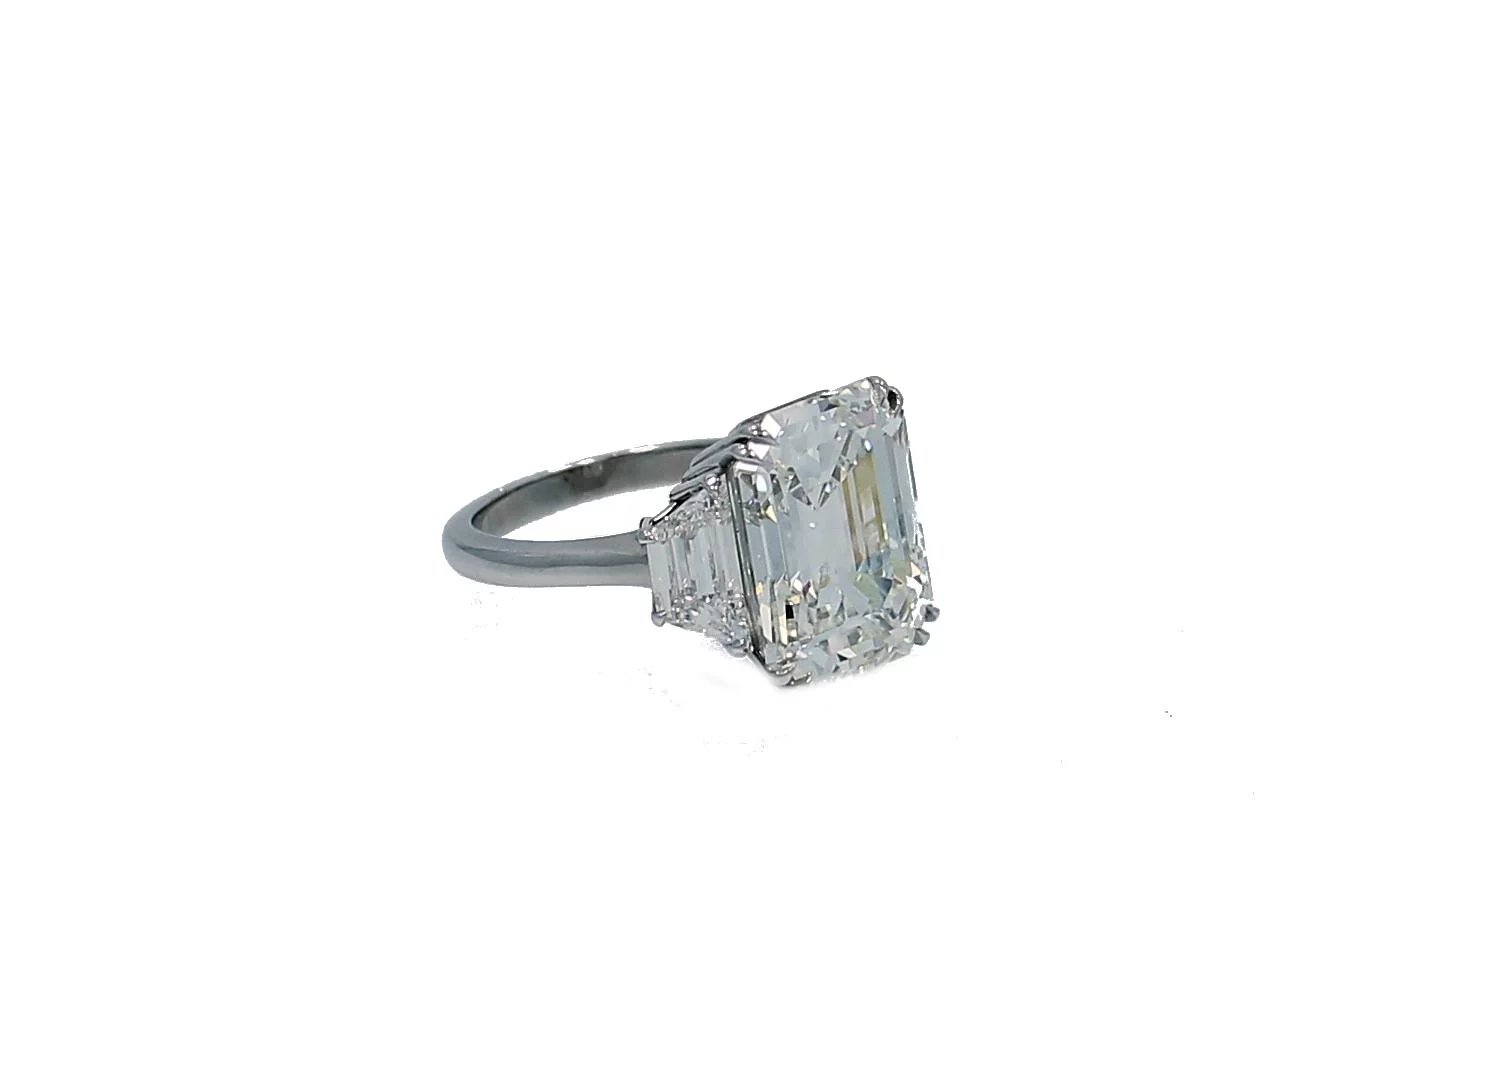 10 07 Carat Gia Emerald Cut Diamond Platinum Engagement